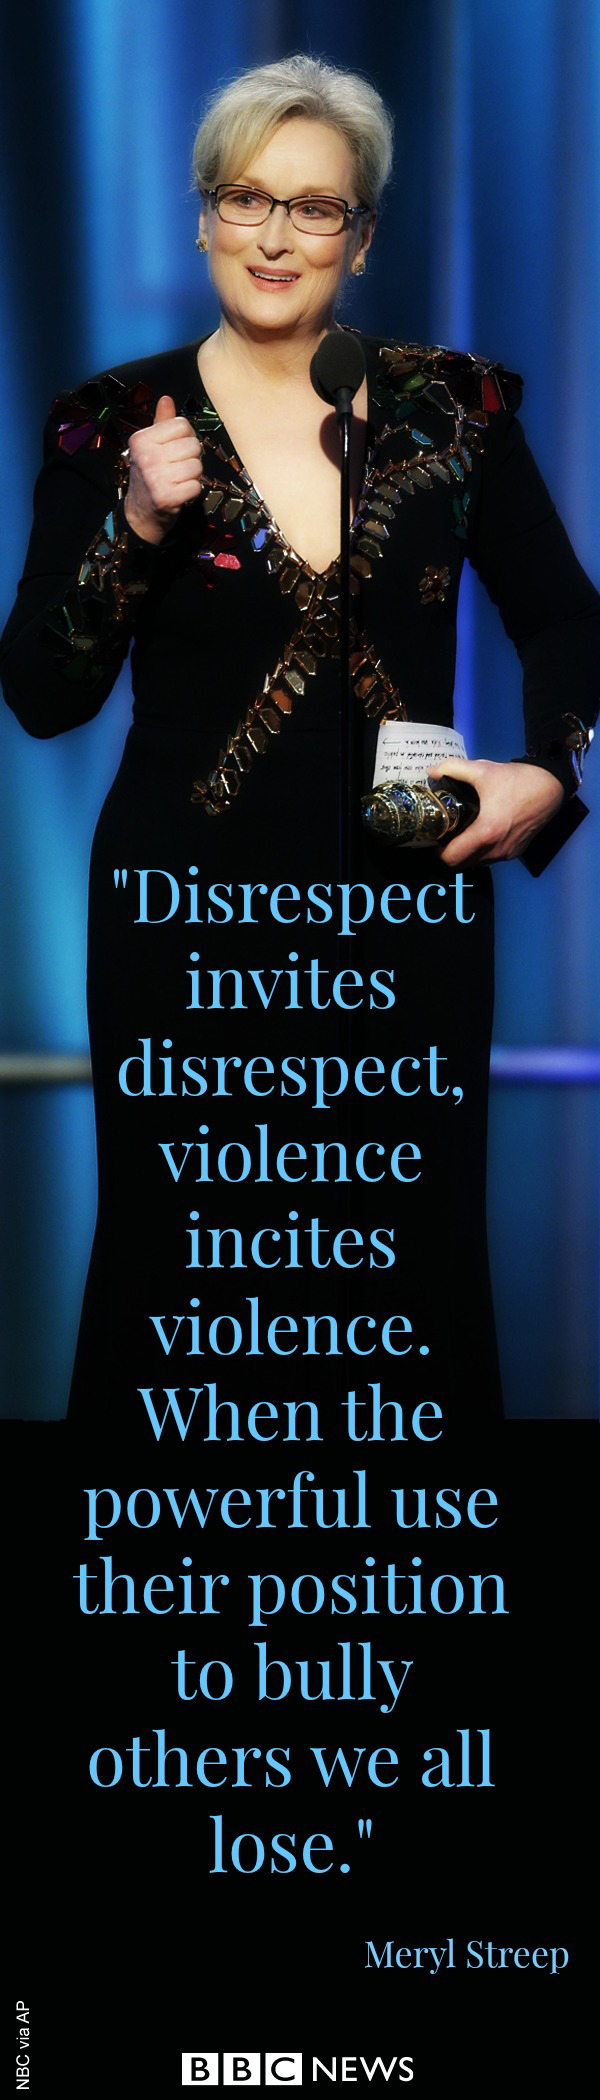 Actress Meryl Streep strongly criticised US President-elect Donald Trump as she received a lifetime achievement award at the Golden Globes. While Streep did not name Mr Trump, the three-time Oscar-winning actress used almost the entire speech to say his actions legitimised bullying.